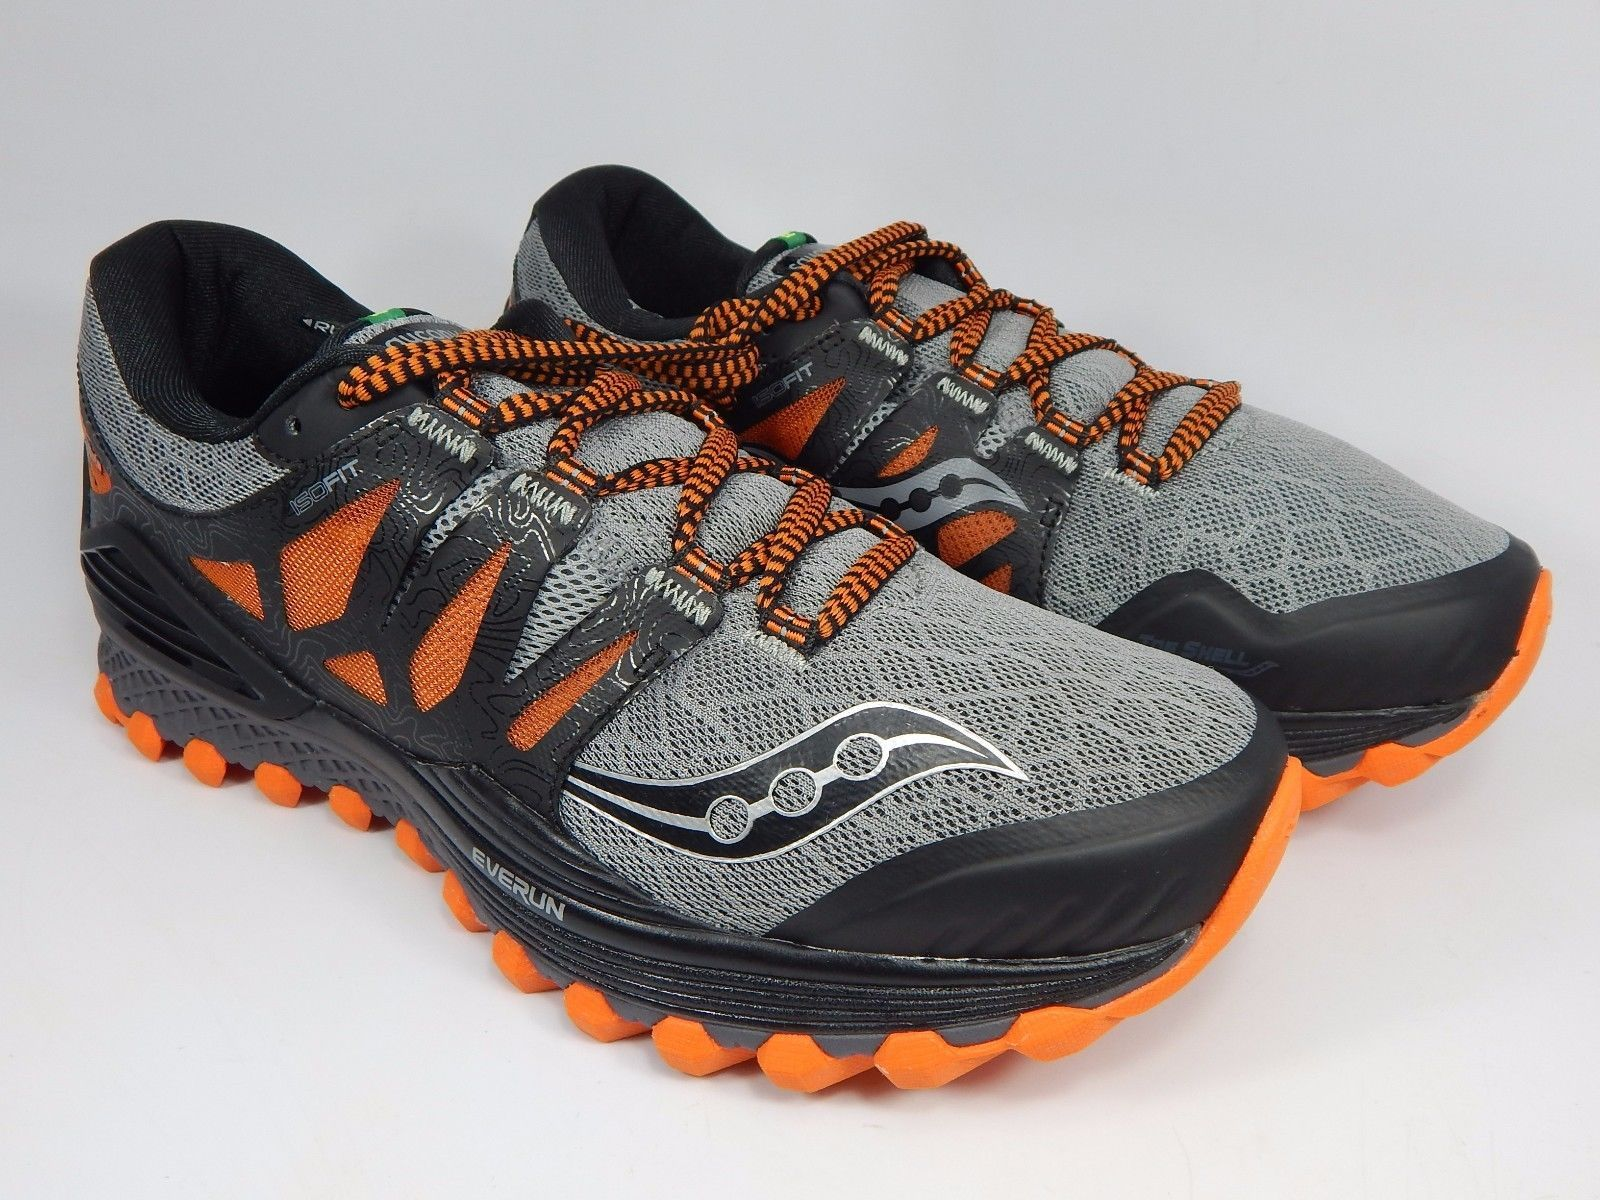 Saucony Xodus ISO Men's Trail Running Shoes Sz US 9 M (D) EU 42.5 Gray S20325-1